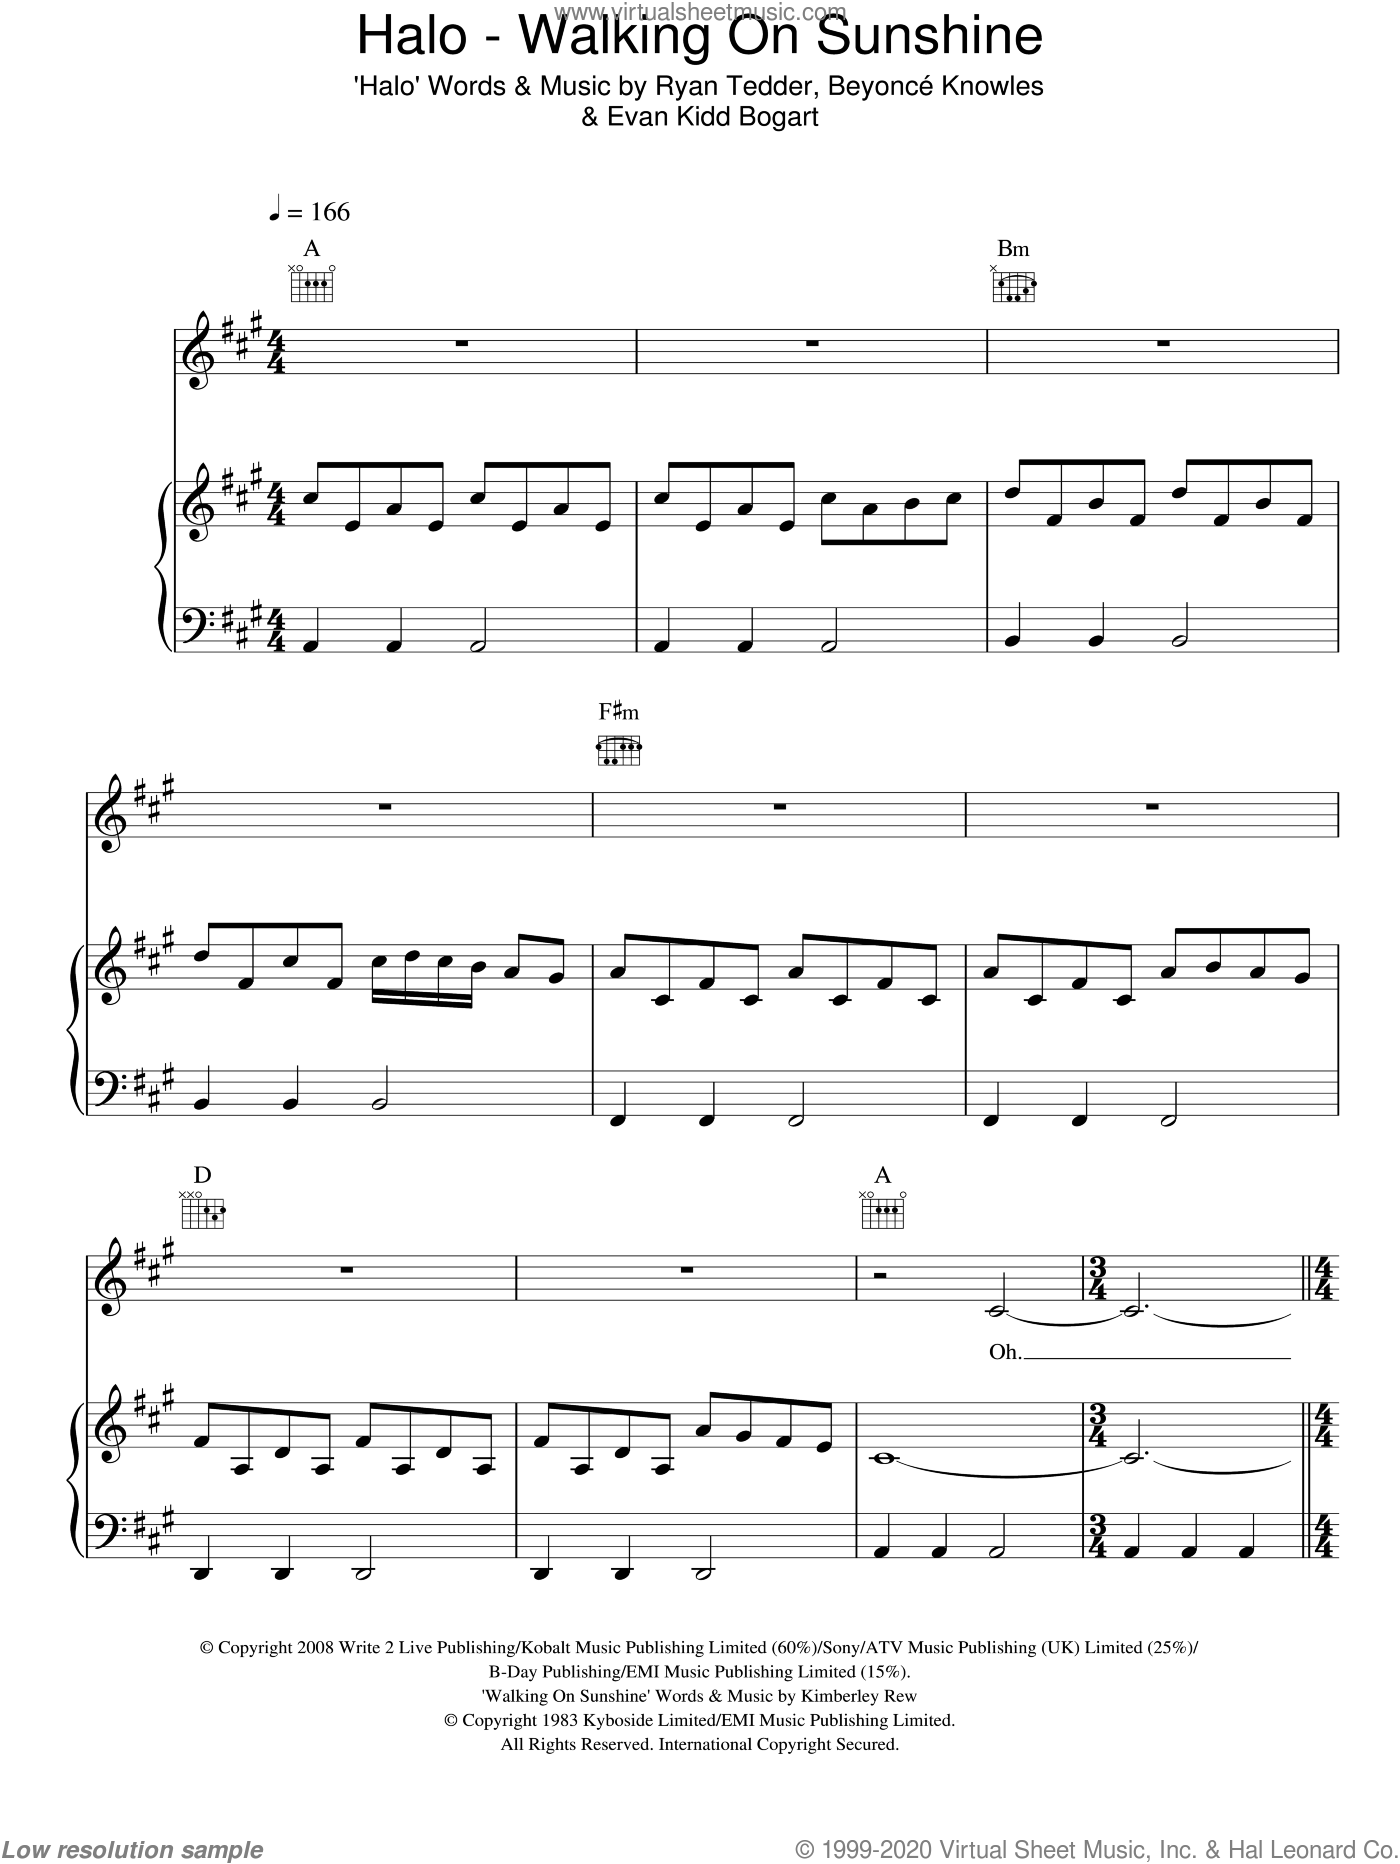 Halo / Walking On Sunshine sheet music for voice, piano or guitar by Ryan Tedder, Glee Cast, Miscellaneous, Beyonce Knowles and Kimberley Rew. Score Image Preview.